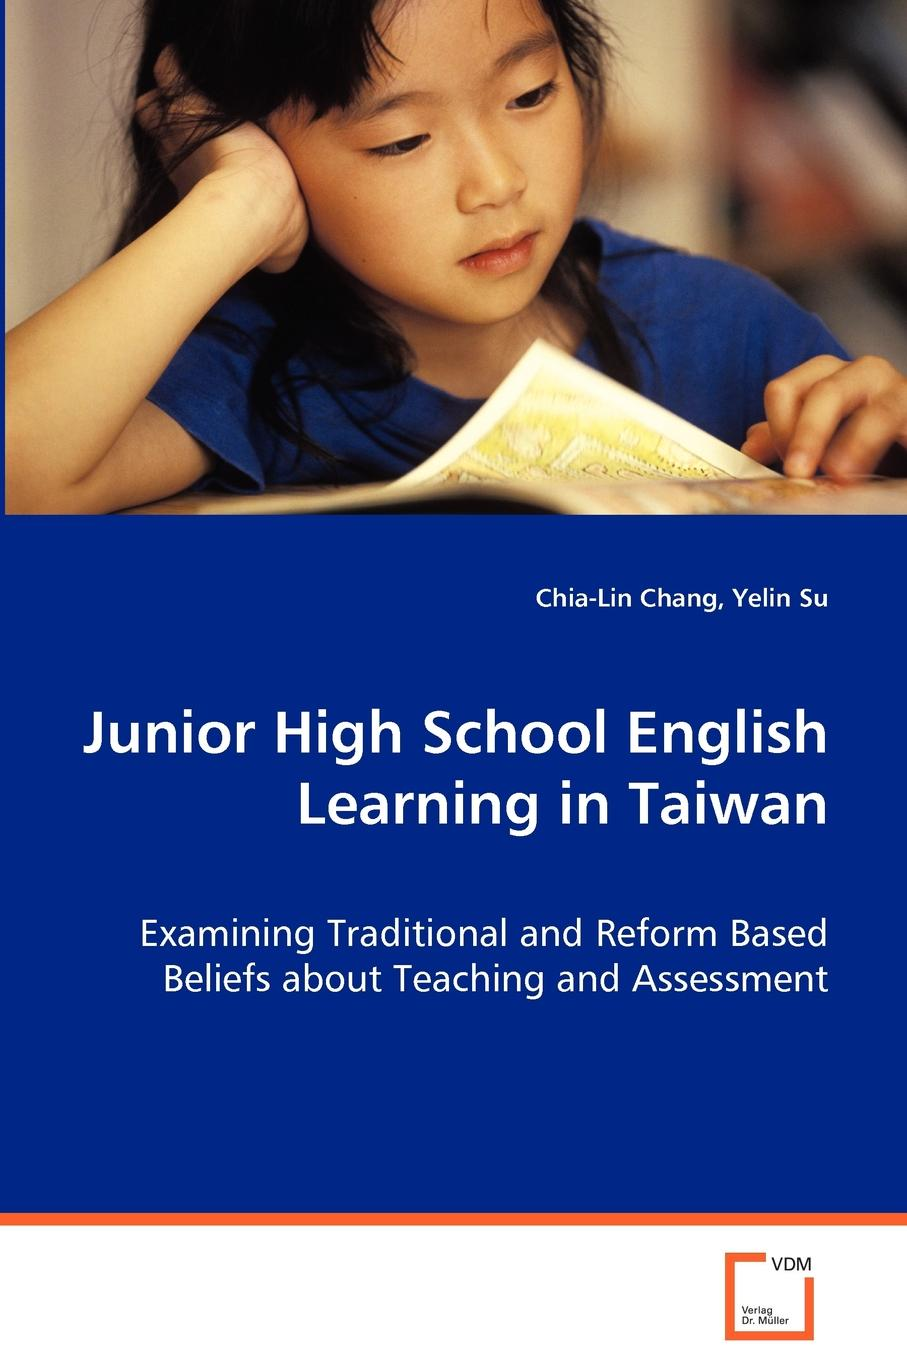 Chia-Lin Chang, Yelin Su Junior High School English Learning in Taiwan - Examining Traditional and Reform Based Beliefs about Teaching and Assessment irrational beliefs